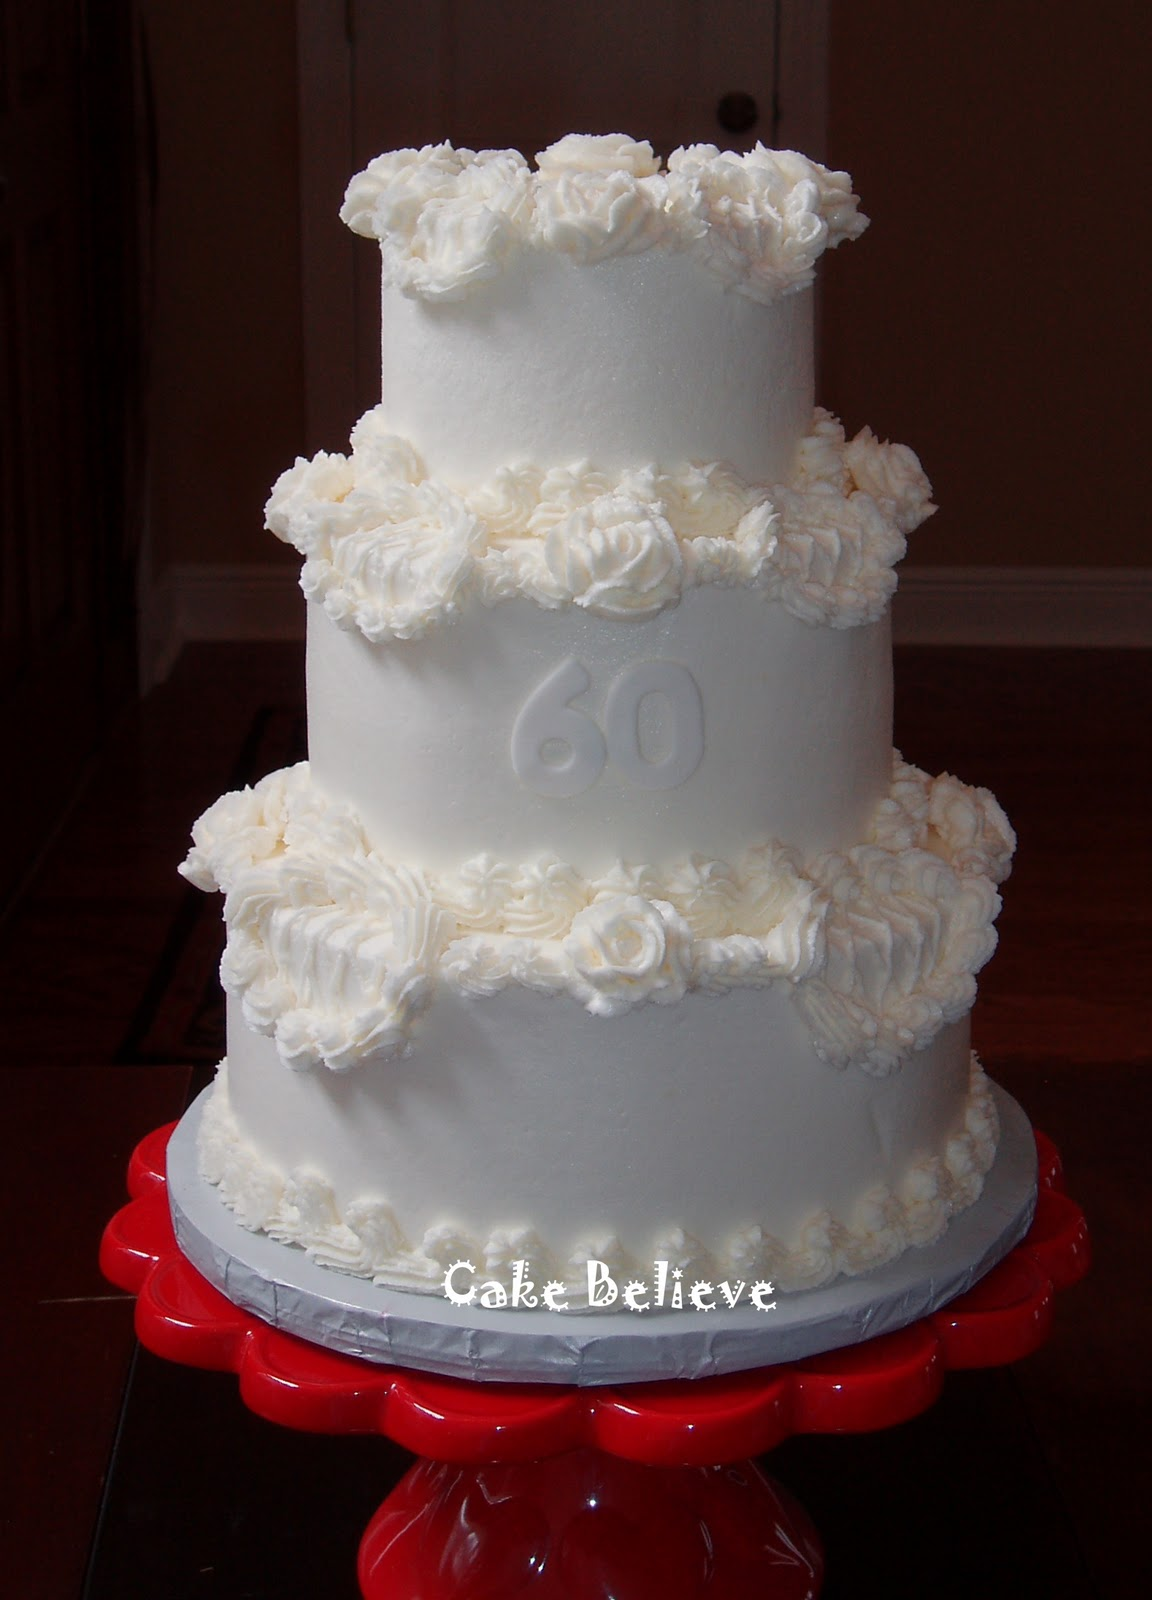 Cake Believe 60th Wedding Anniversary